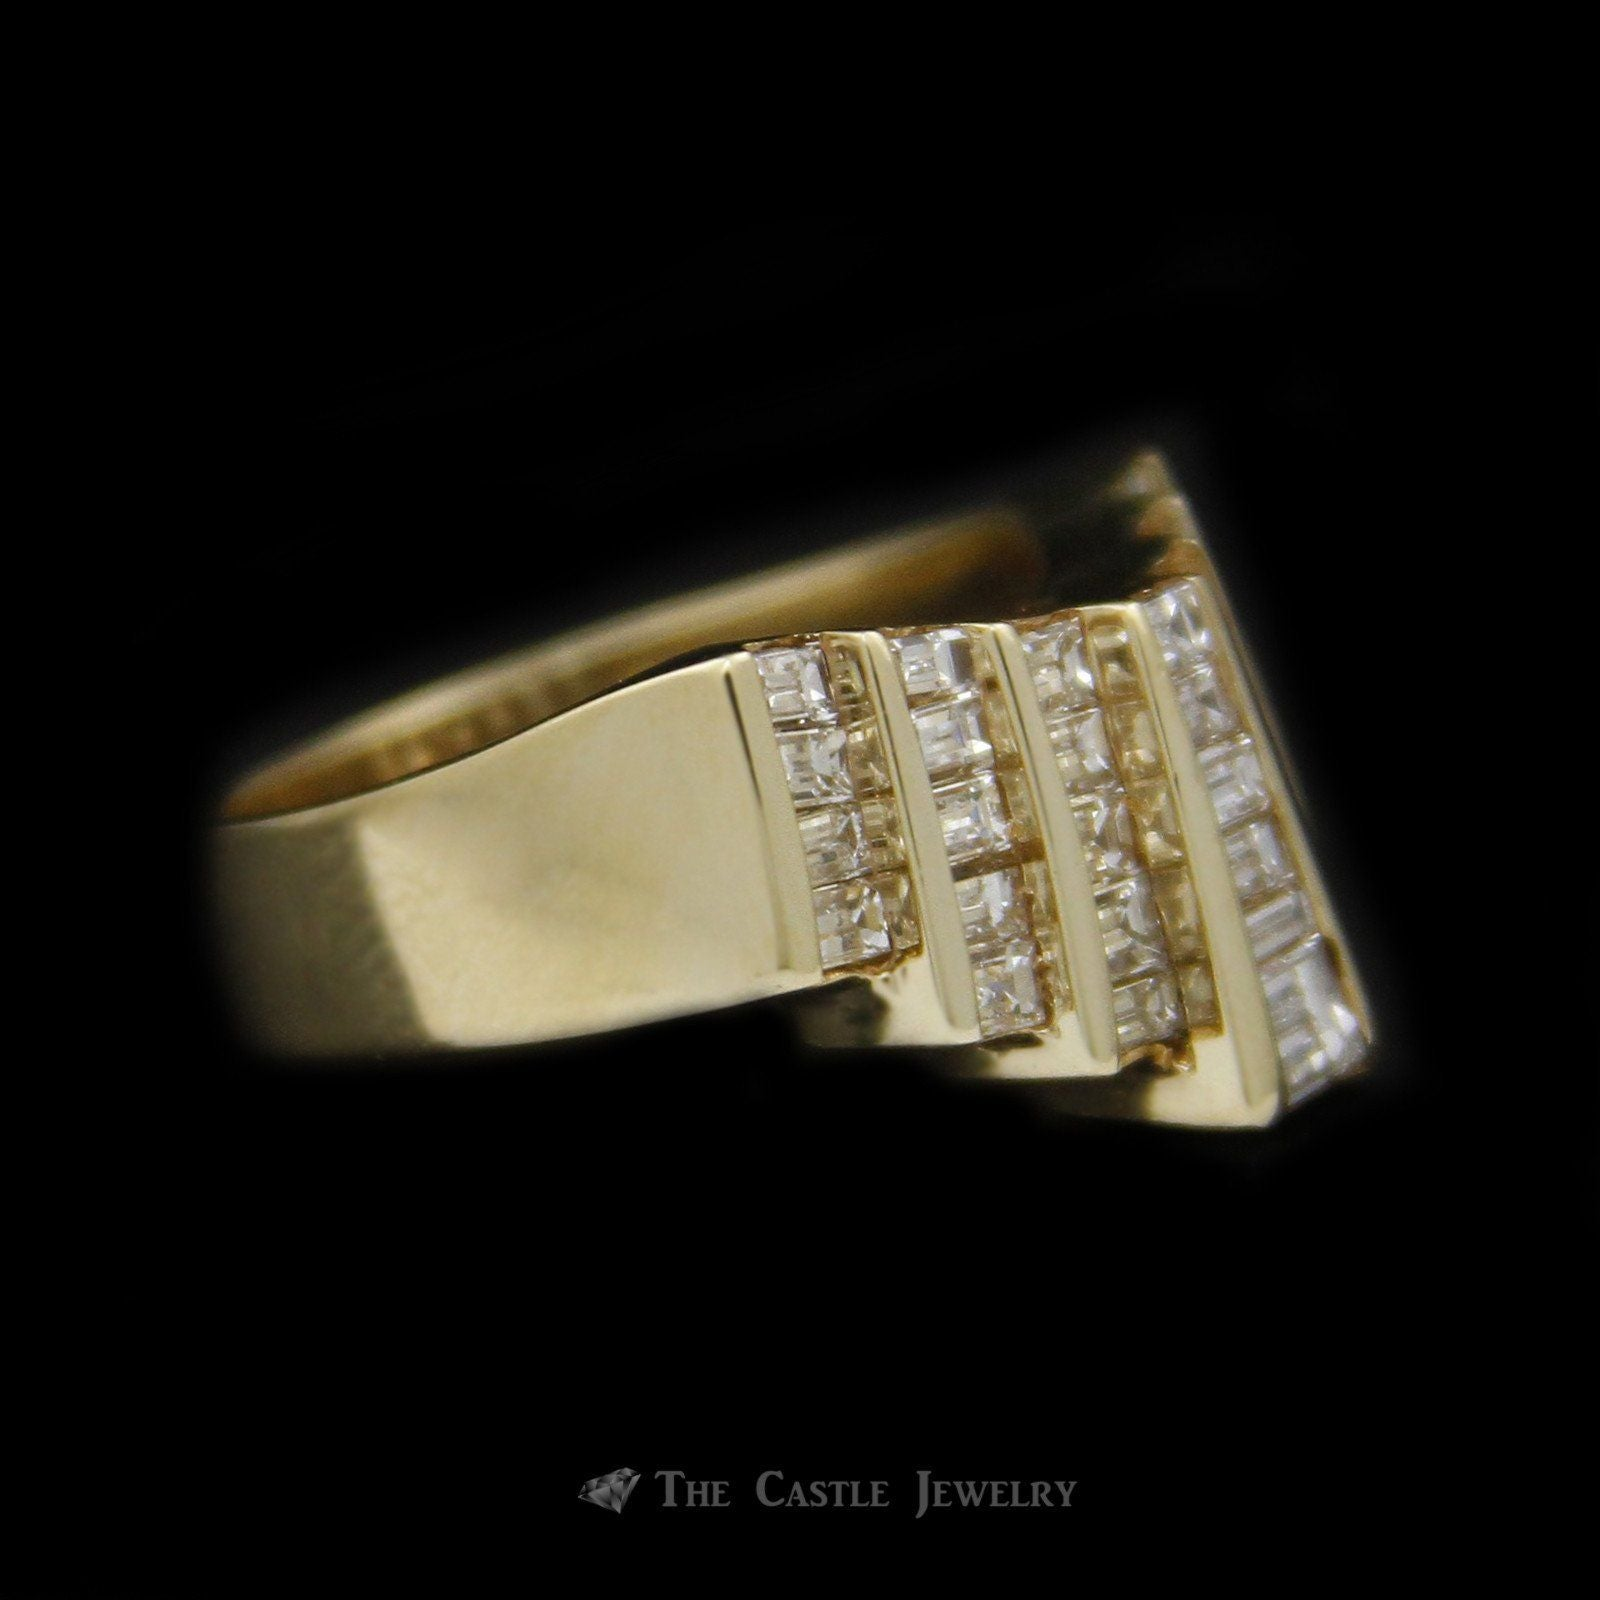 Stunning Baguette Diamond Pyramid Style Tiara Ring 1.50cttw in 14K Yellow Gold-2